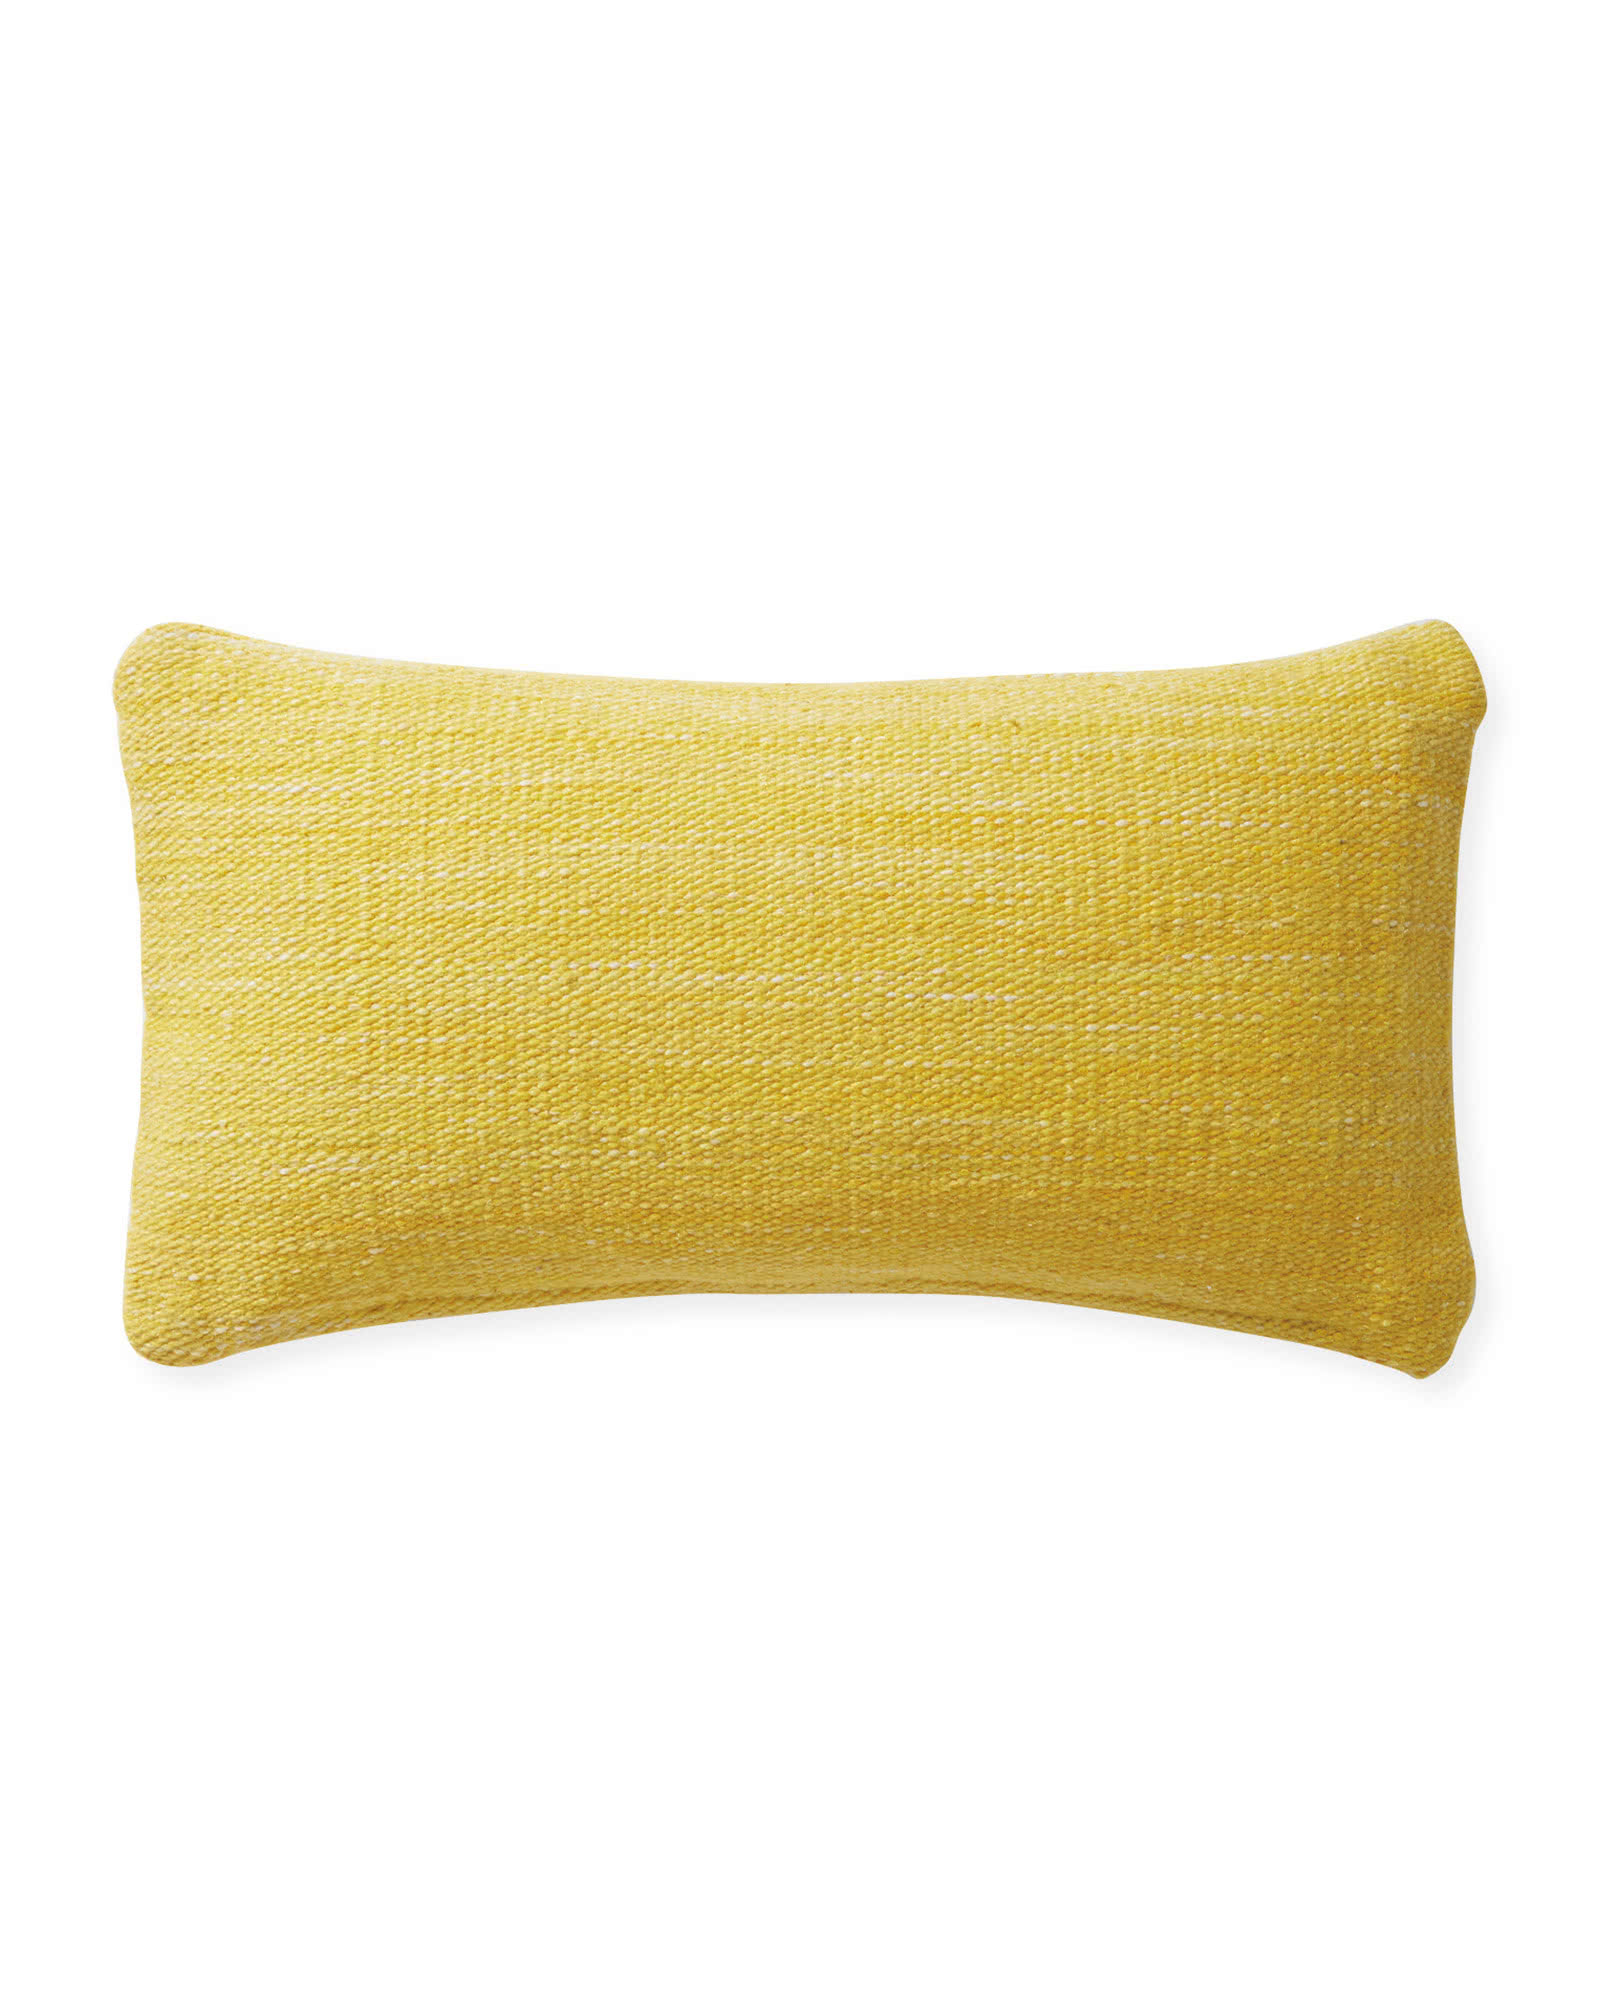 Atlantic Outdoor Pillow Cover, Canary